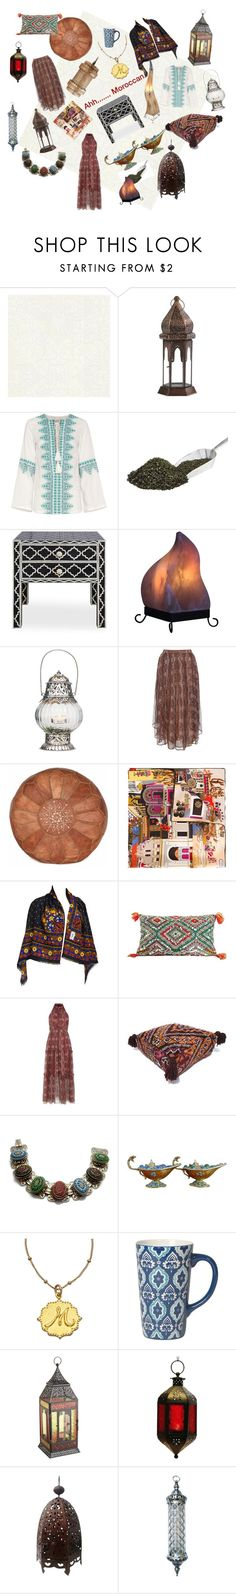 """""""Moroccan."""" by julie-andrews ❤ liked on Polyvore featuring interior, interiors, interior design, home, home decor, interior decorating, Talitha, Harrods, Cultural Intrigue and Bohemia"""